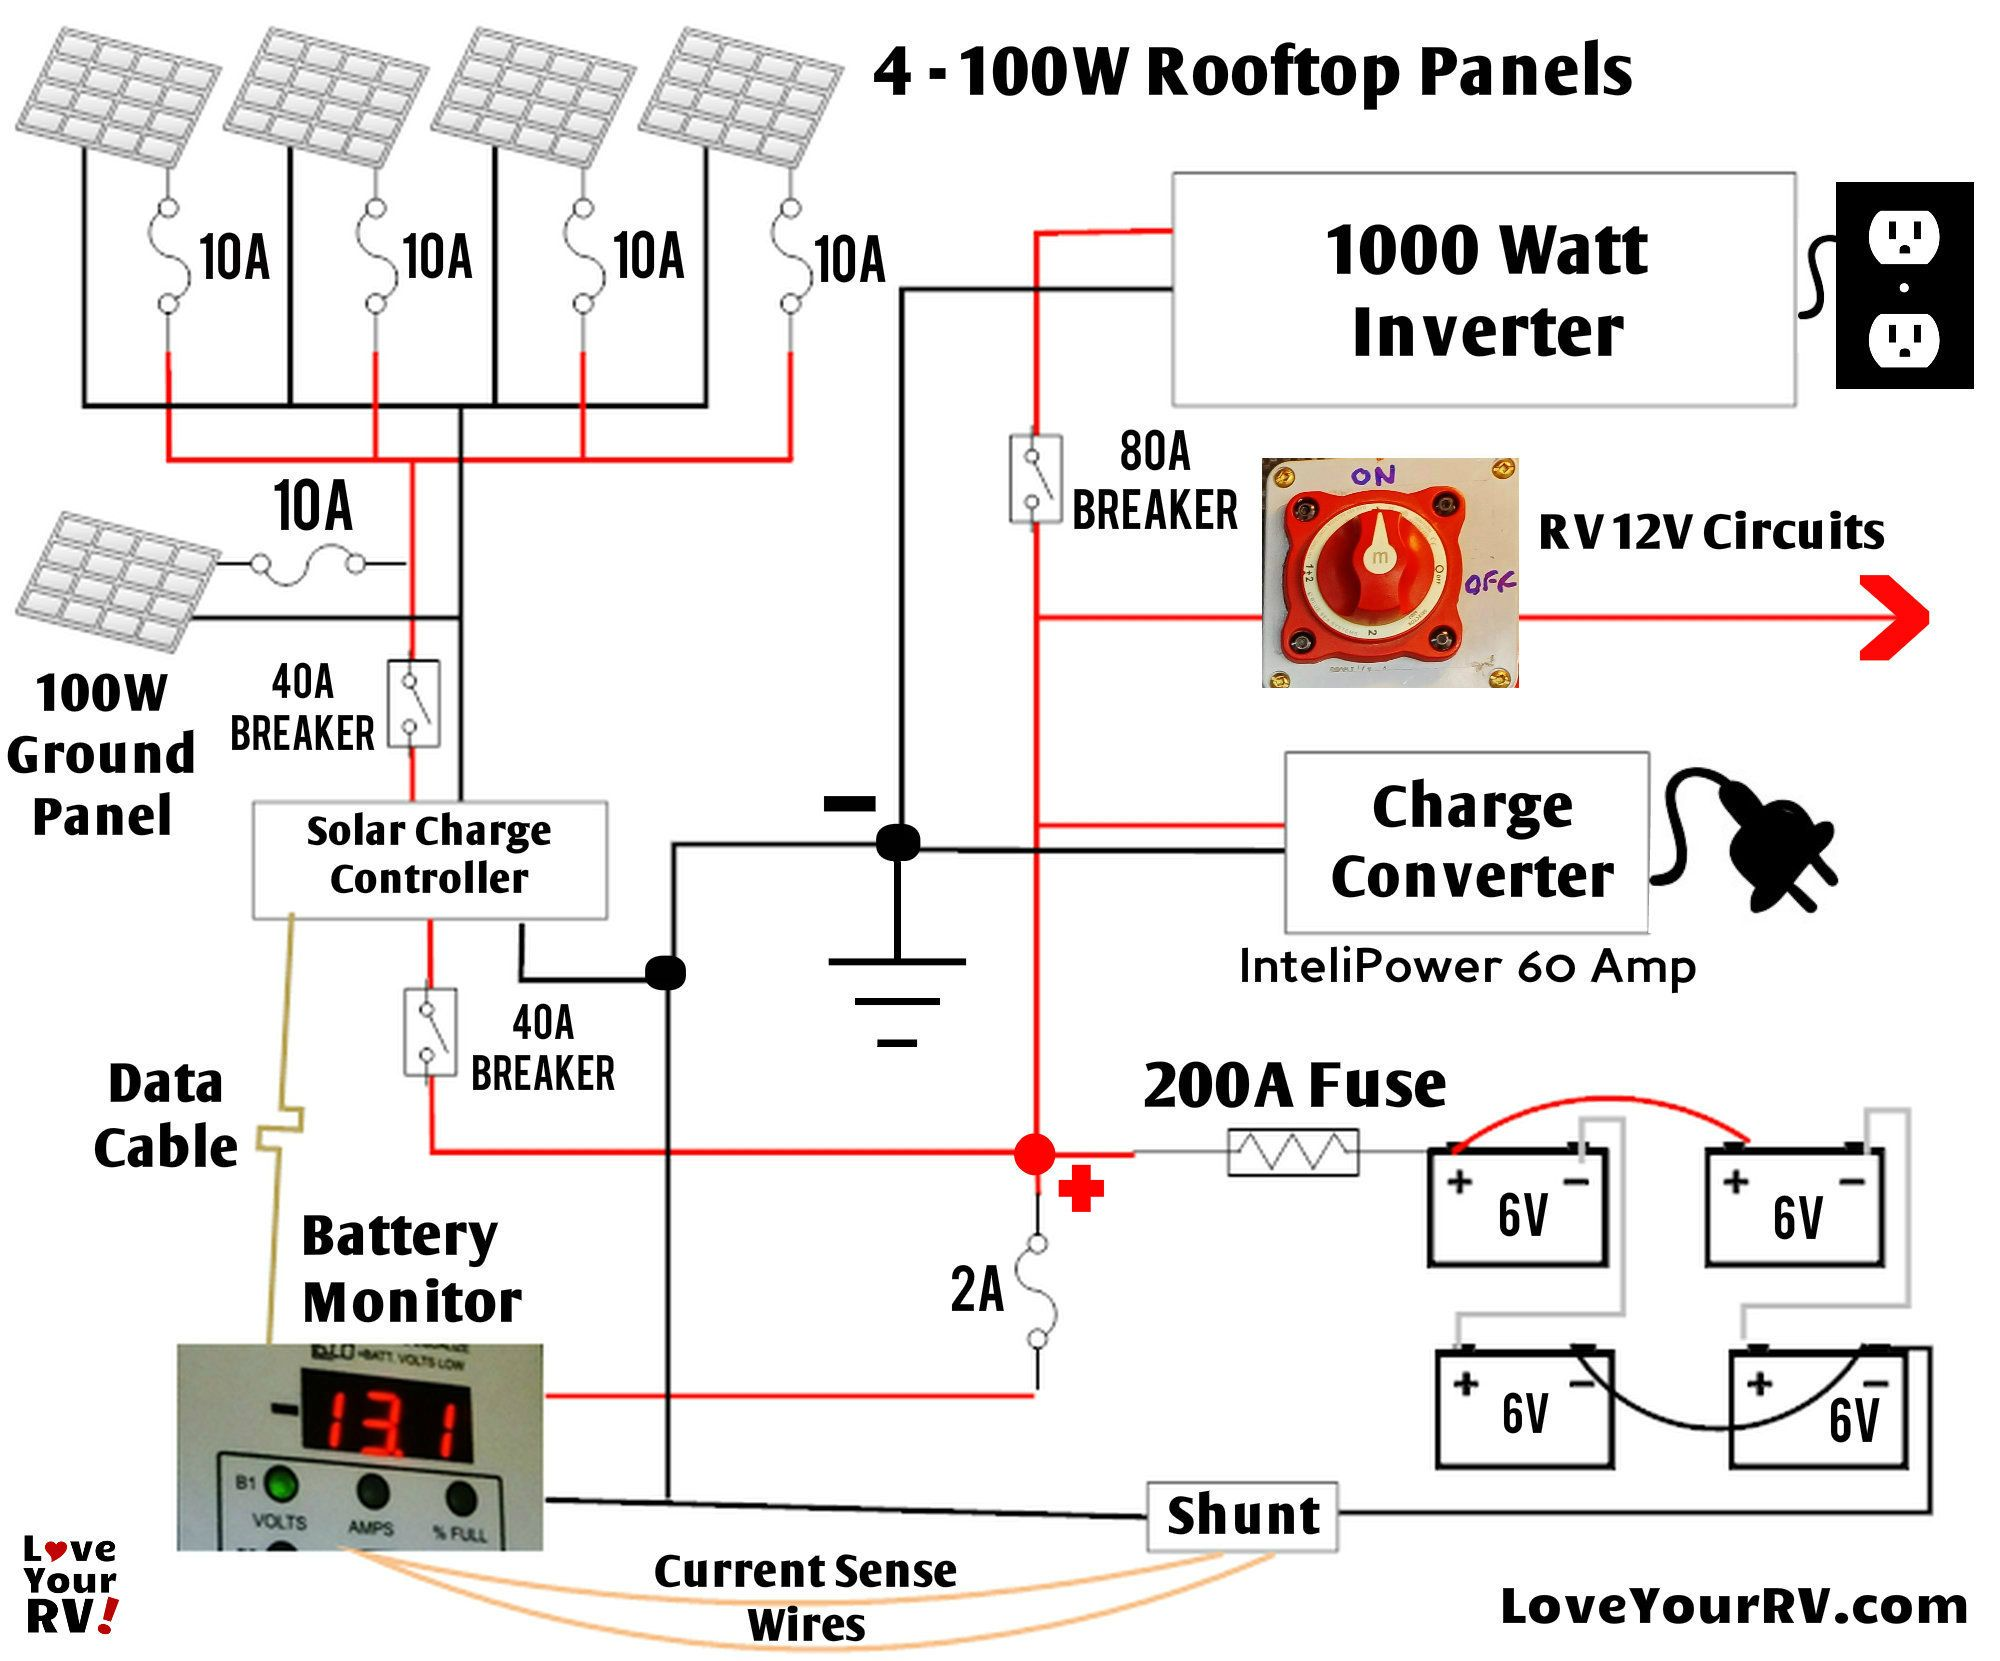 hight resolution of schematic diagram of our rv solar power system http www loveyourrv